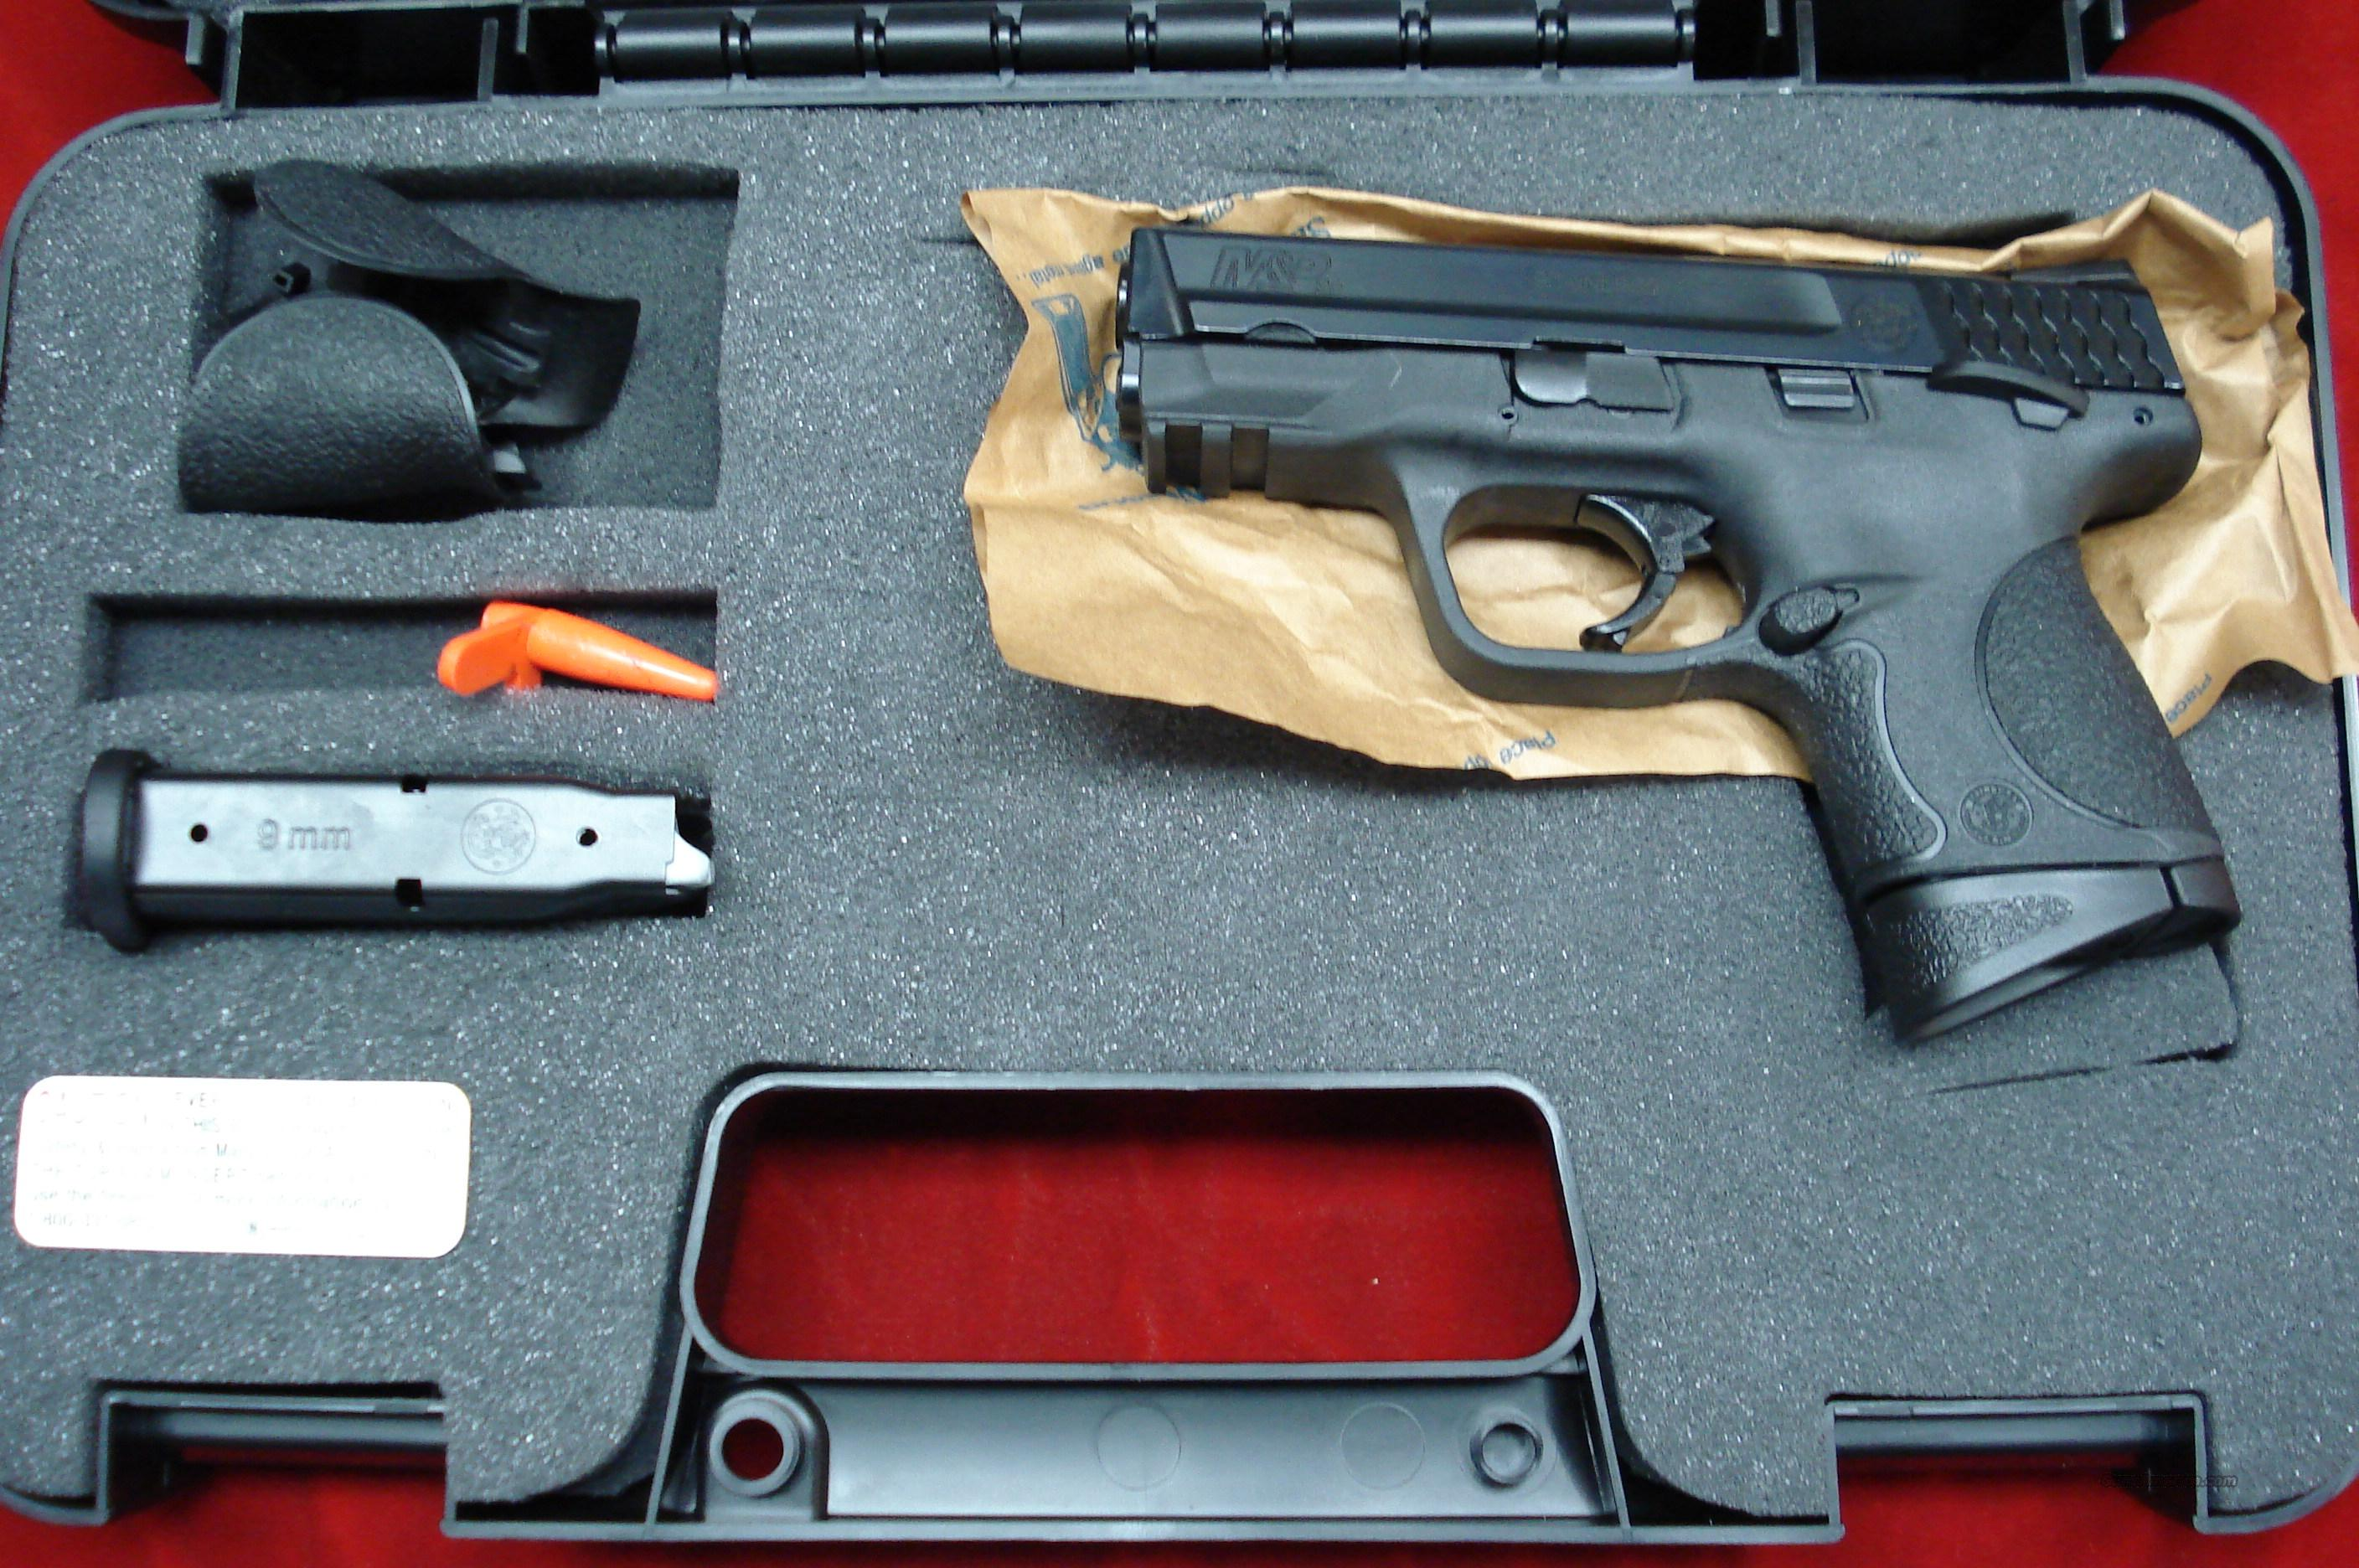 SMITH AND WESSON M&P COMPACT 9MM  AMBI. THUMB SAFETY NEW  (206304)   Guns > Pistols > Smith & Wesson Pistols - Autos > Polymer Frame